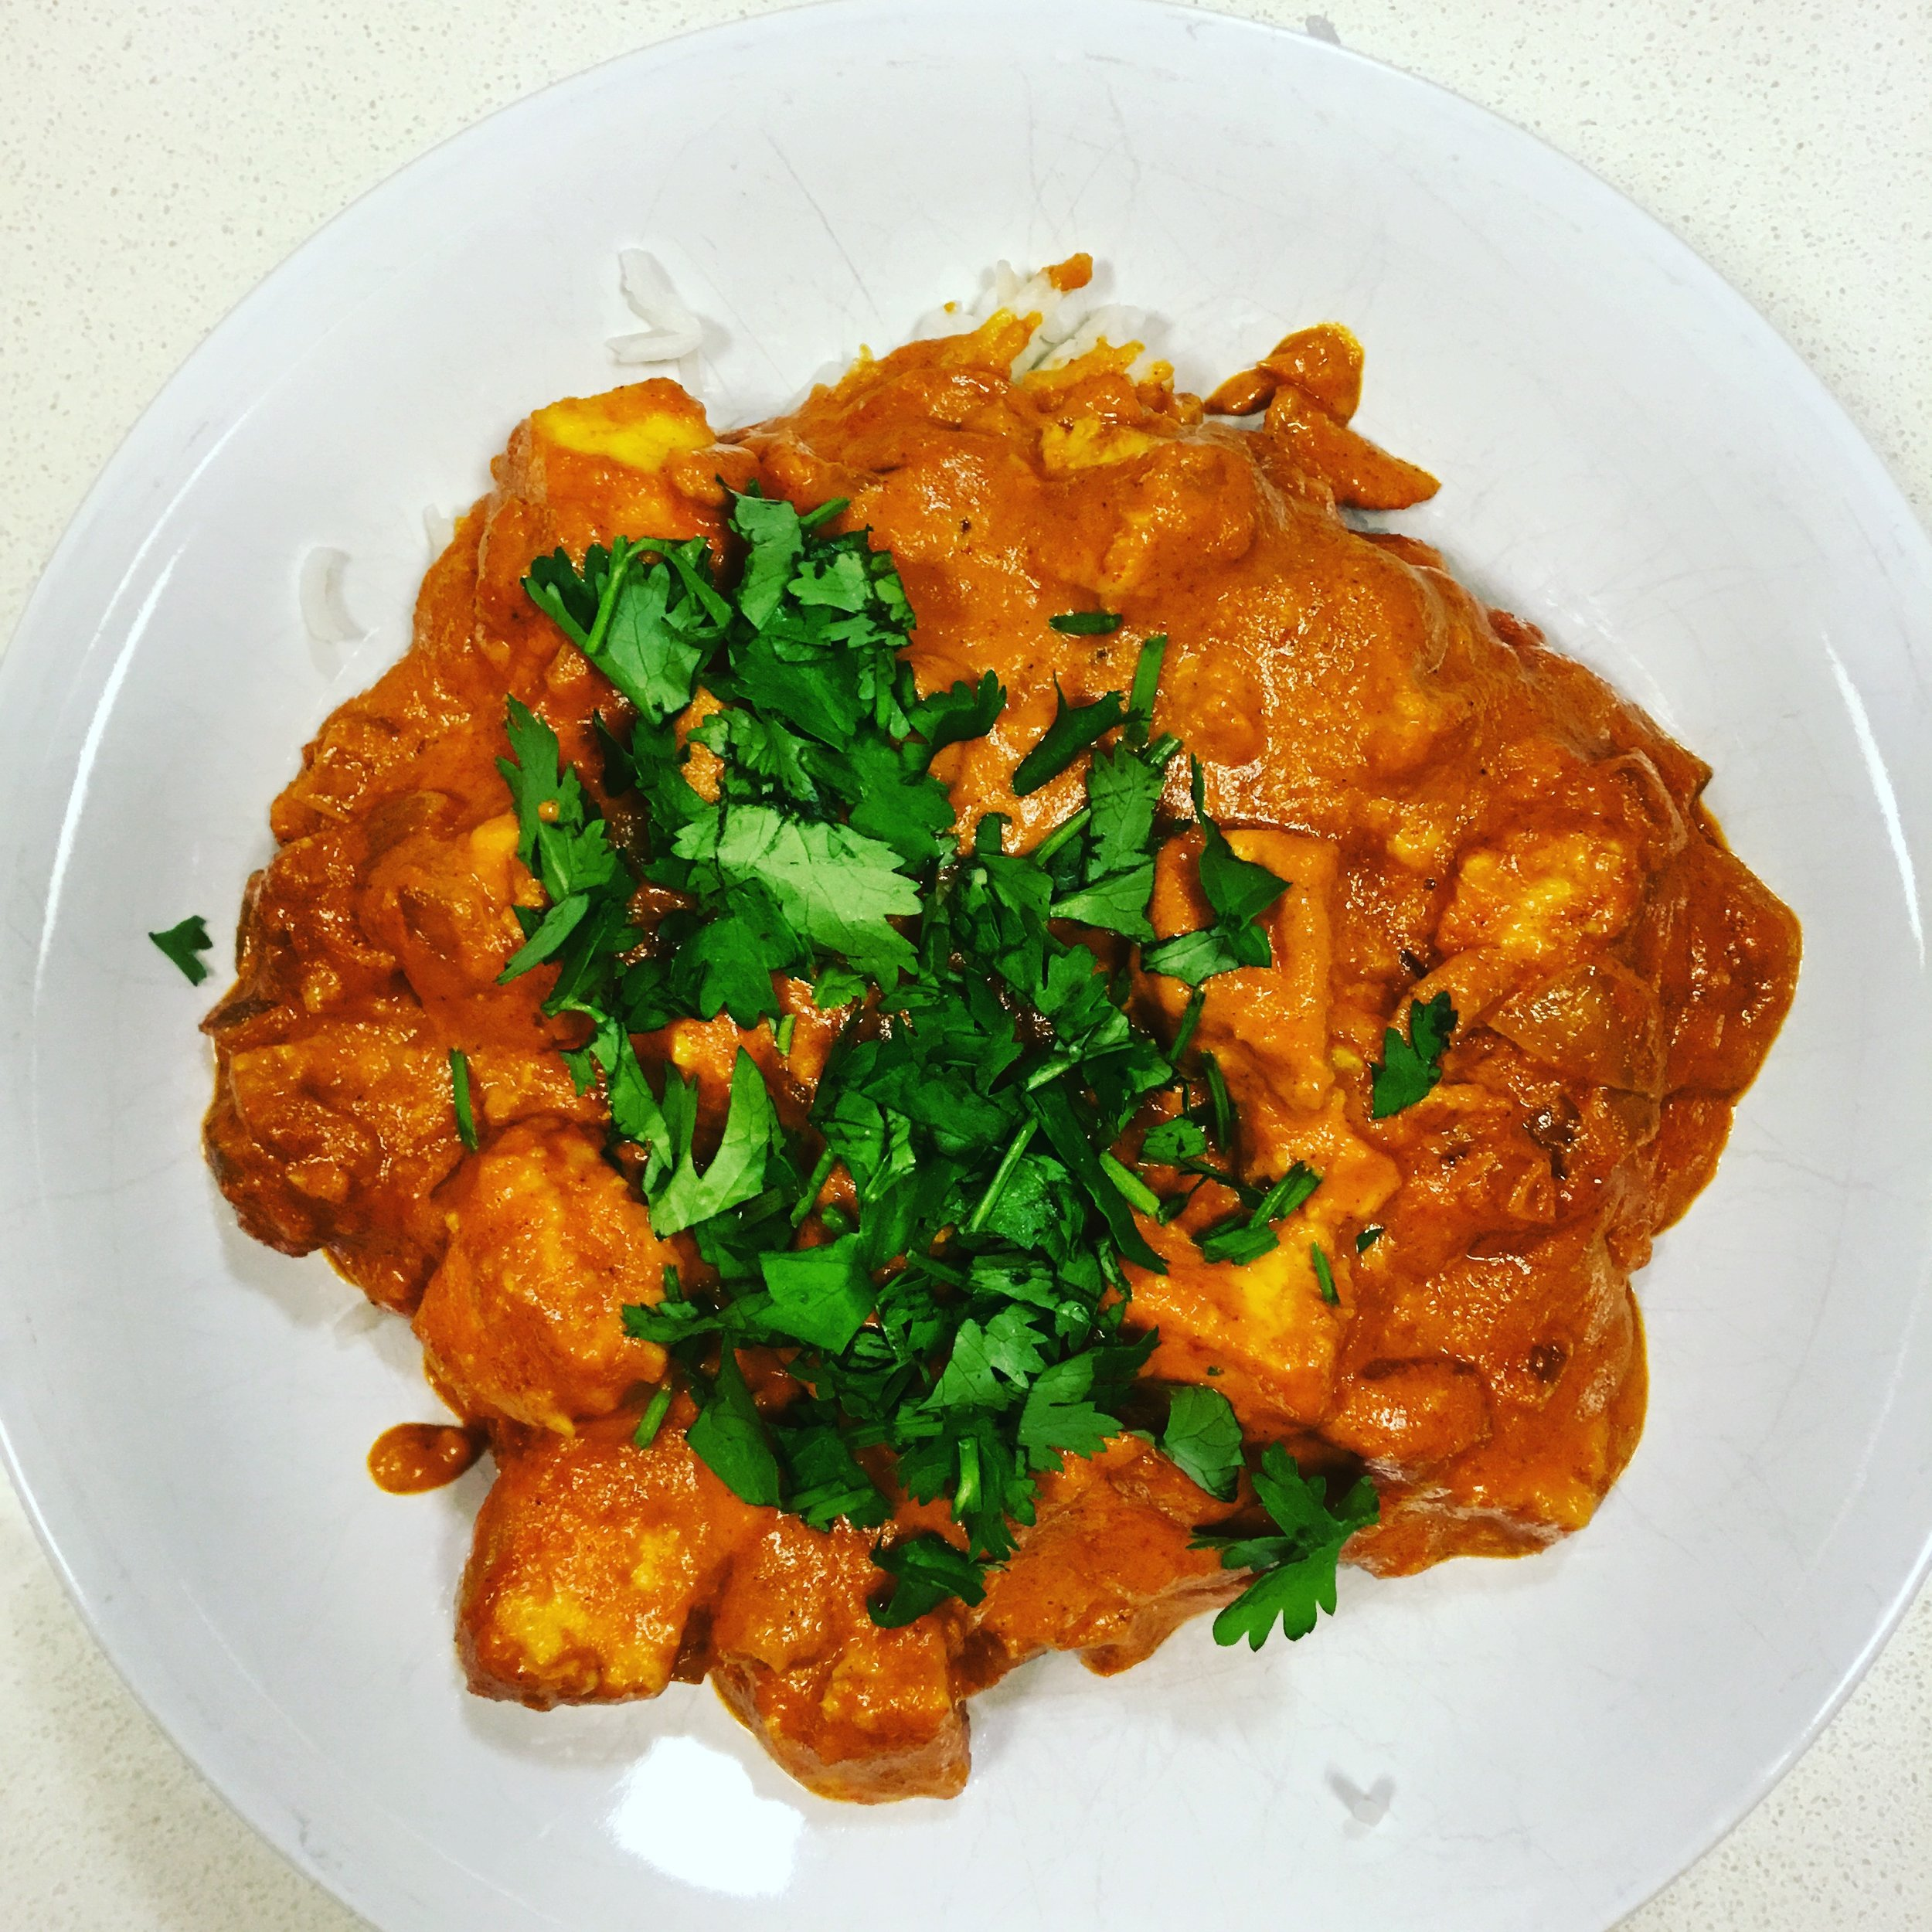 Curry Stand Tikka Masala , made vegetarian by subbing paneer for the chicken in the recipe